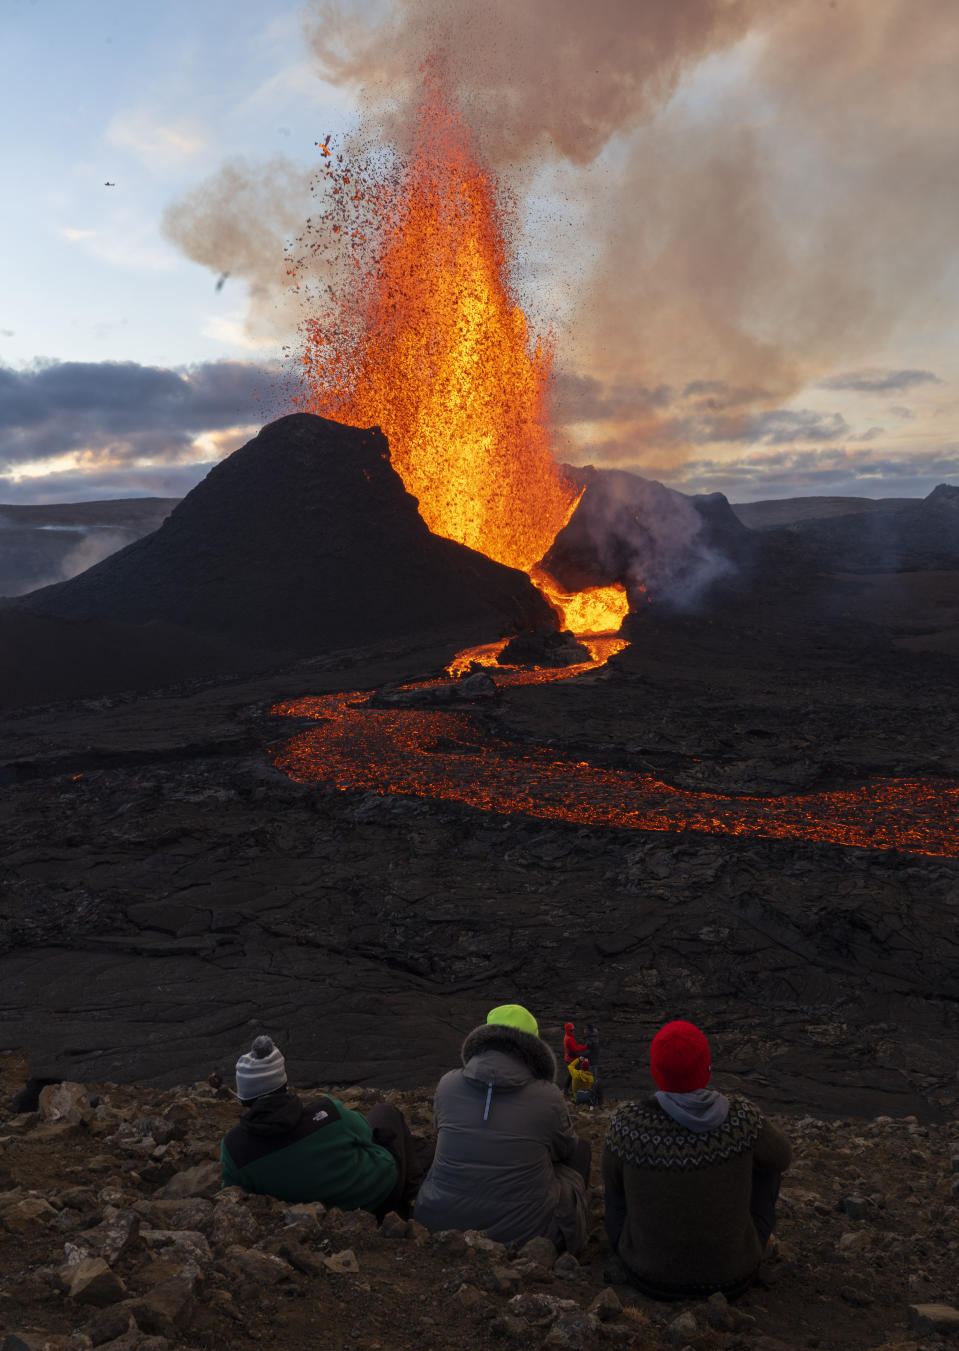 People watch as lava flows from an eruption of the Fagradalsfjall volcano on the Reykjanes Peninsula in southwestern Iceland on Tuesday, May 11, 2021. The glow from the bubbling hot lava spewing out of the Fagradalsfjall volcano can be seen from the outskirts of Iceland's capital, Reykjavík, which is about 32 kilometers (20 miles) away. (AP Photo/Miguel Morenatti)